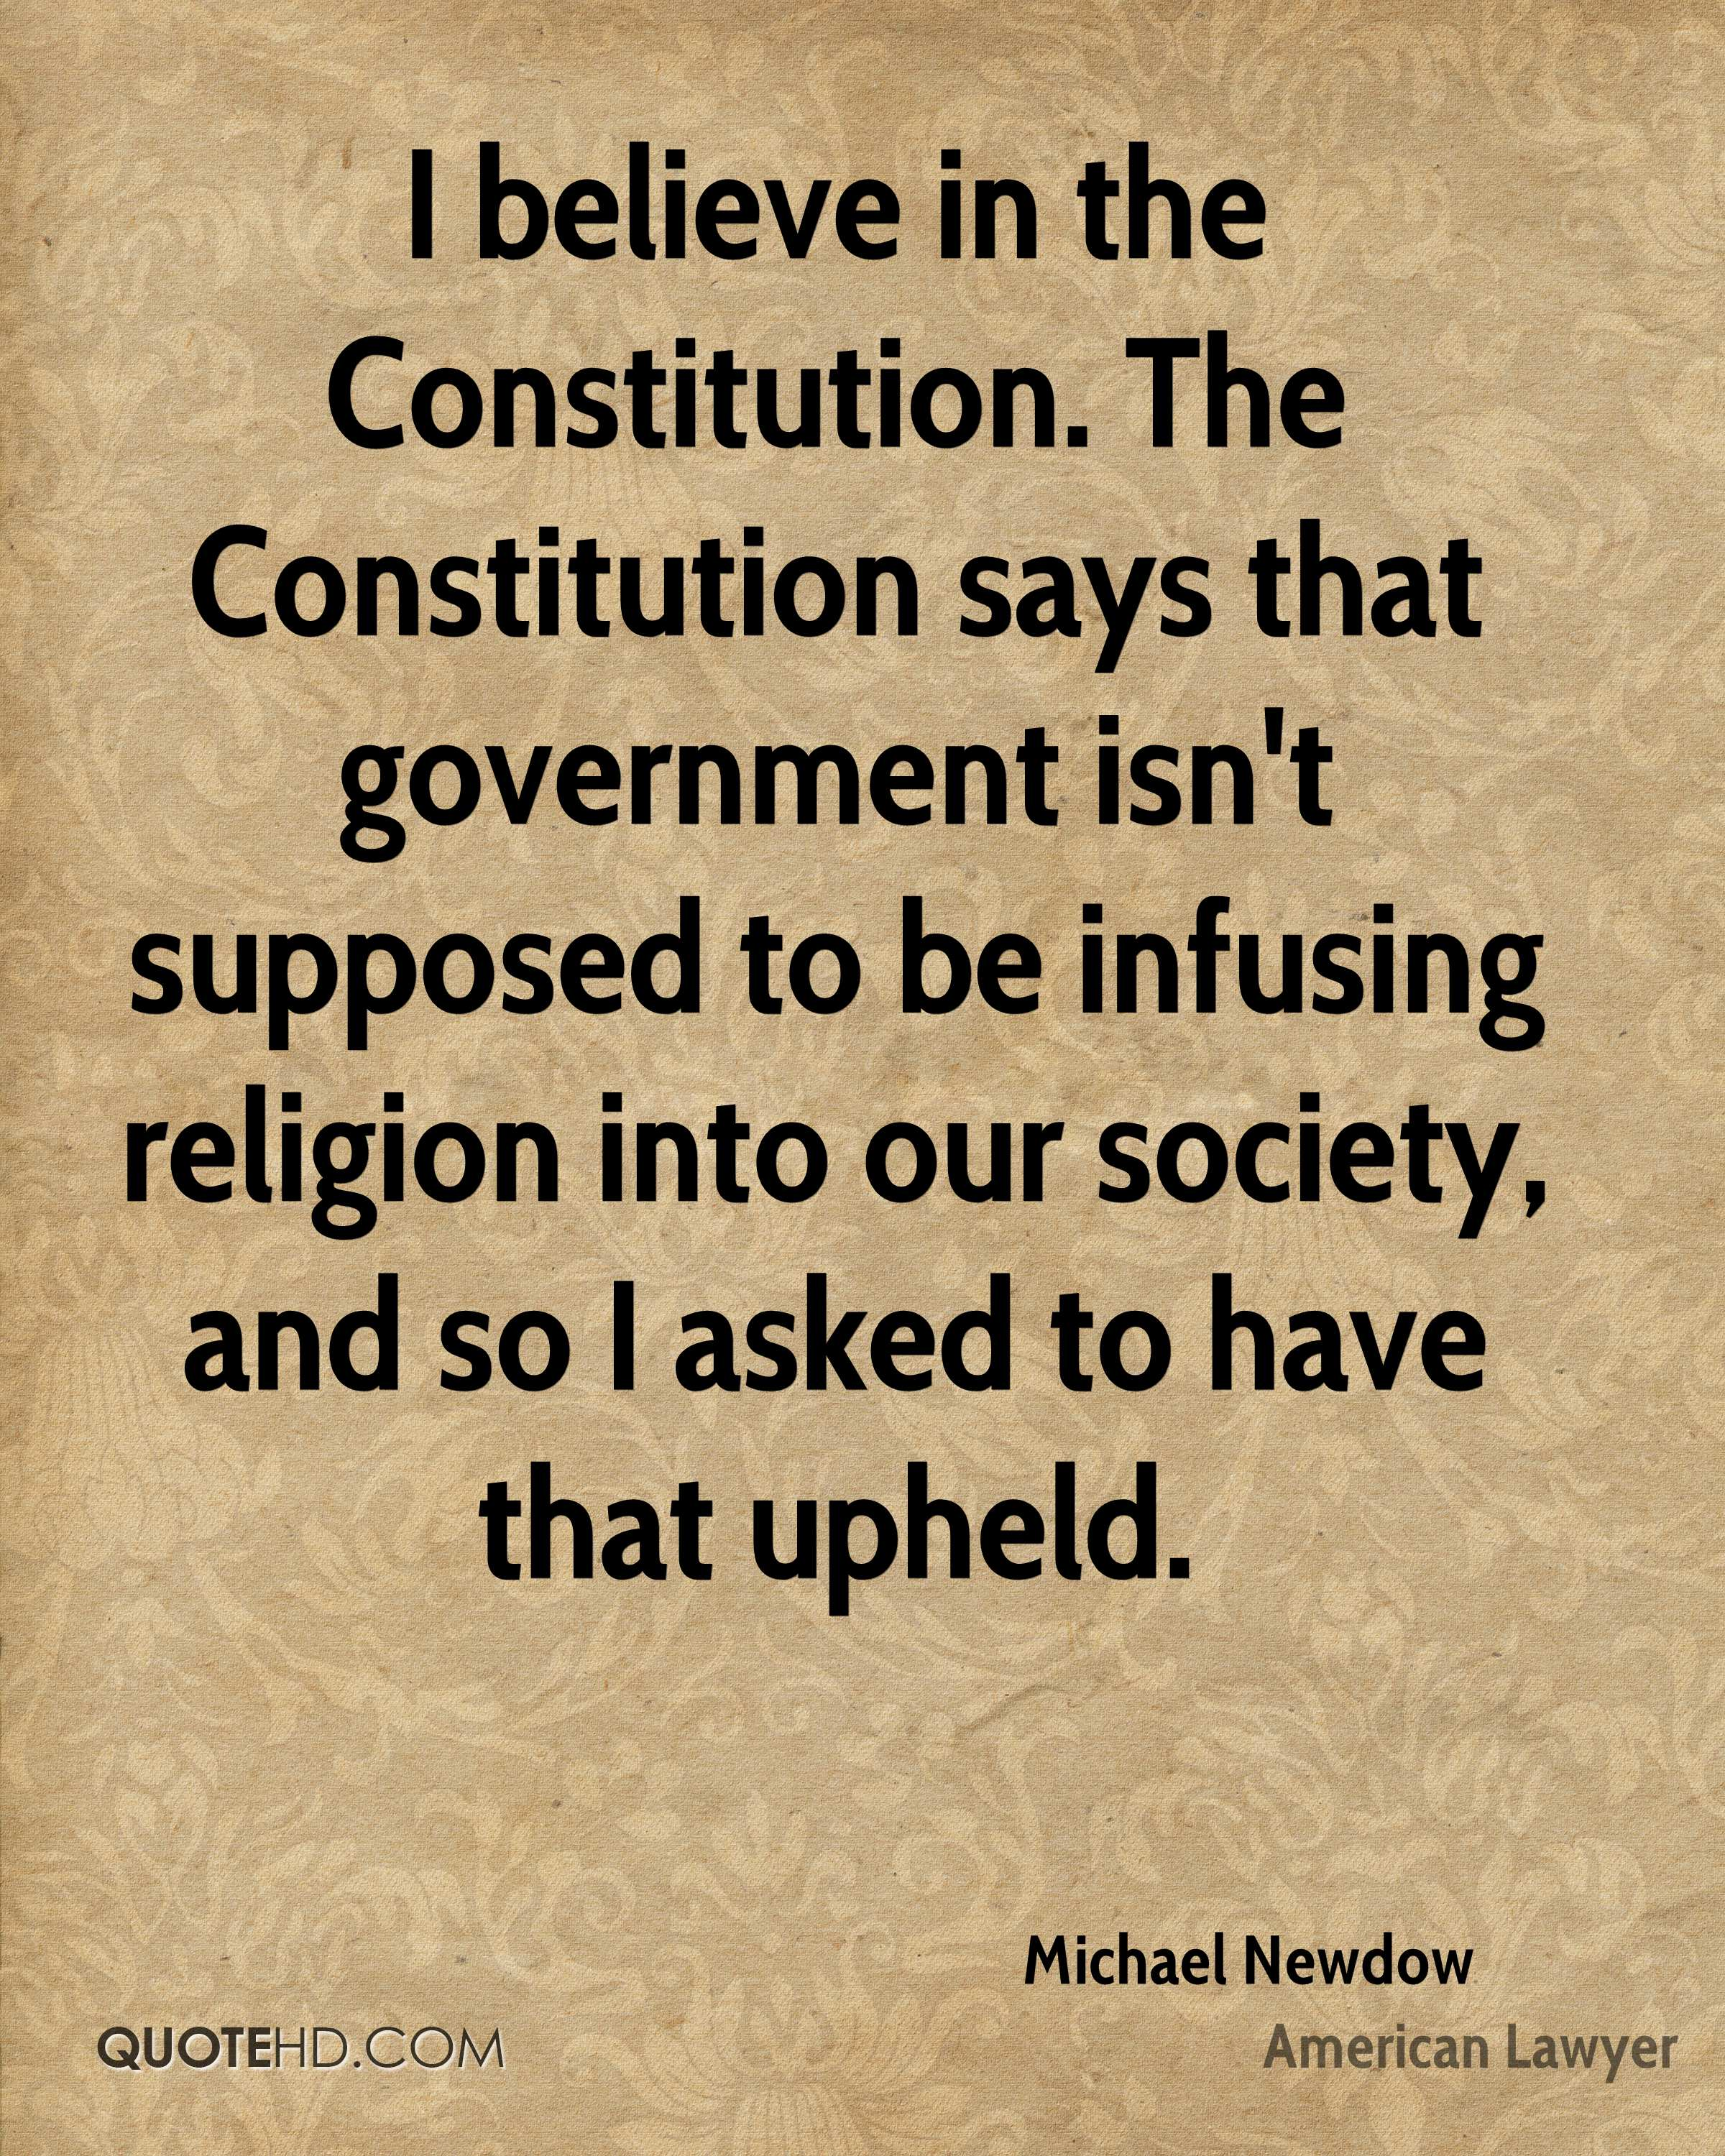 I believe in the Constitution. The Constitution says that government isn't supposed to be infusing religion into our society, and so I asked to have that upheld.